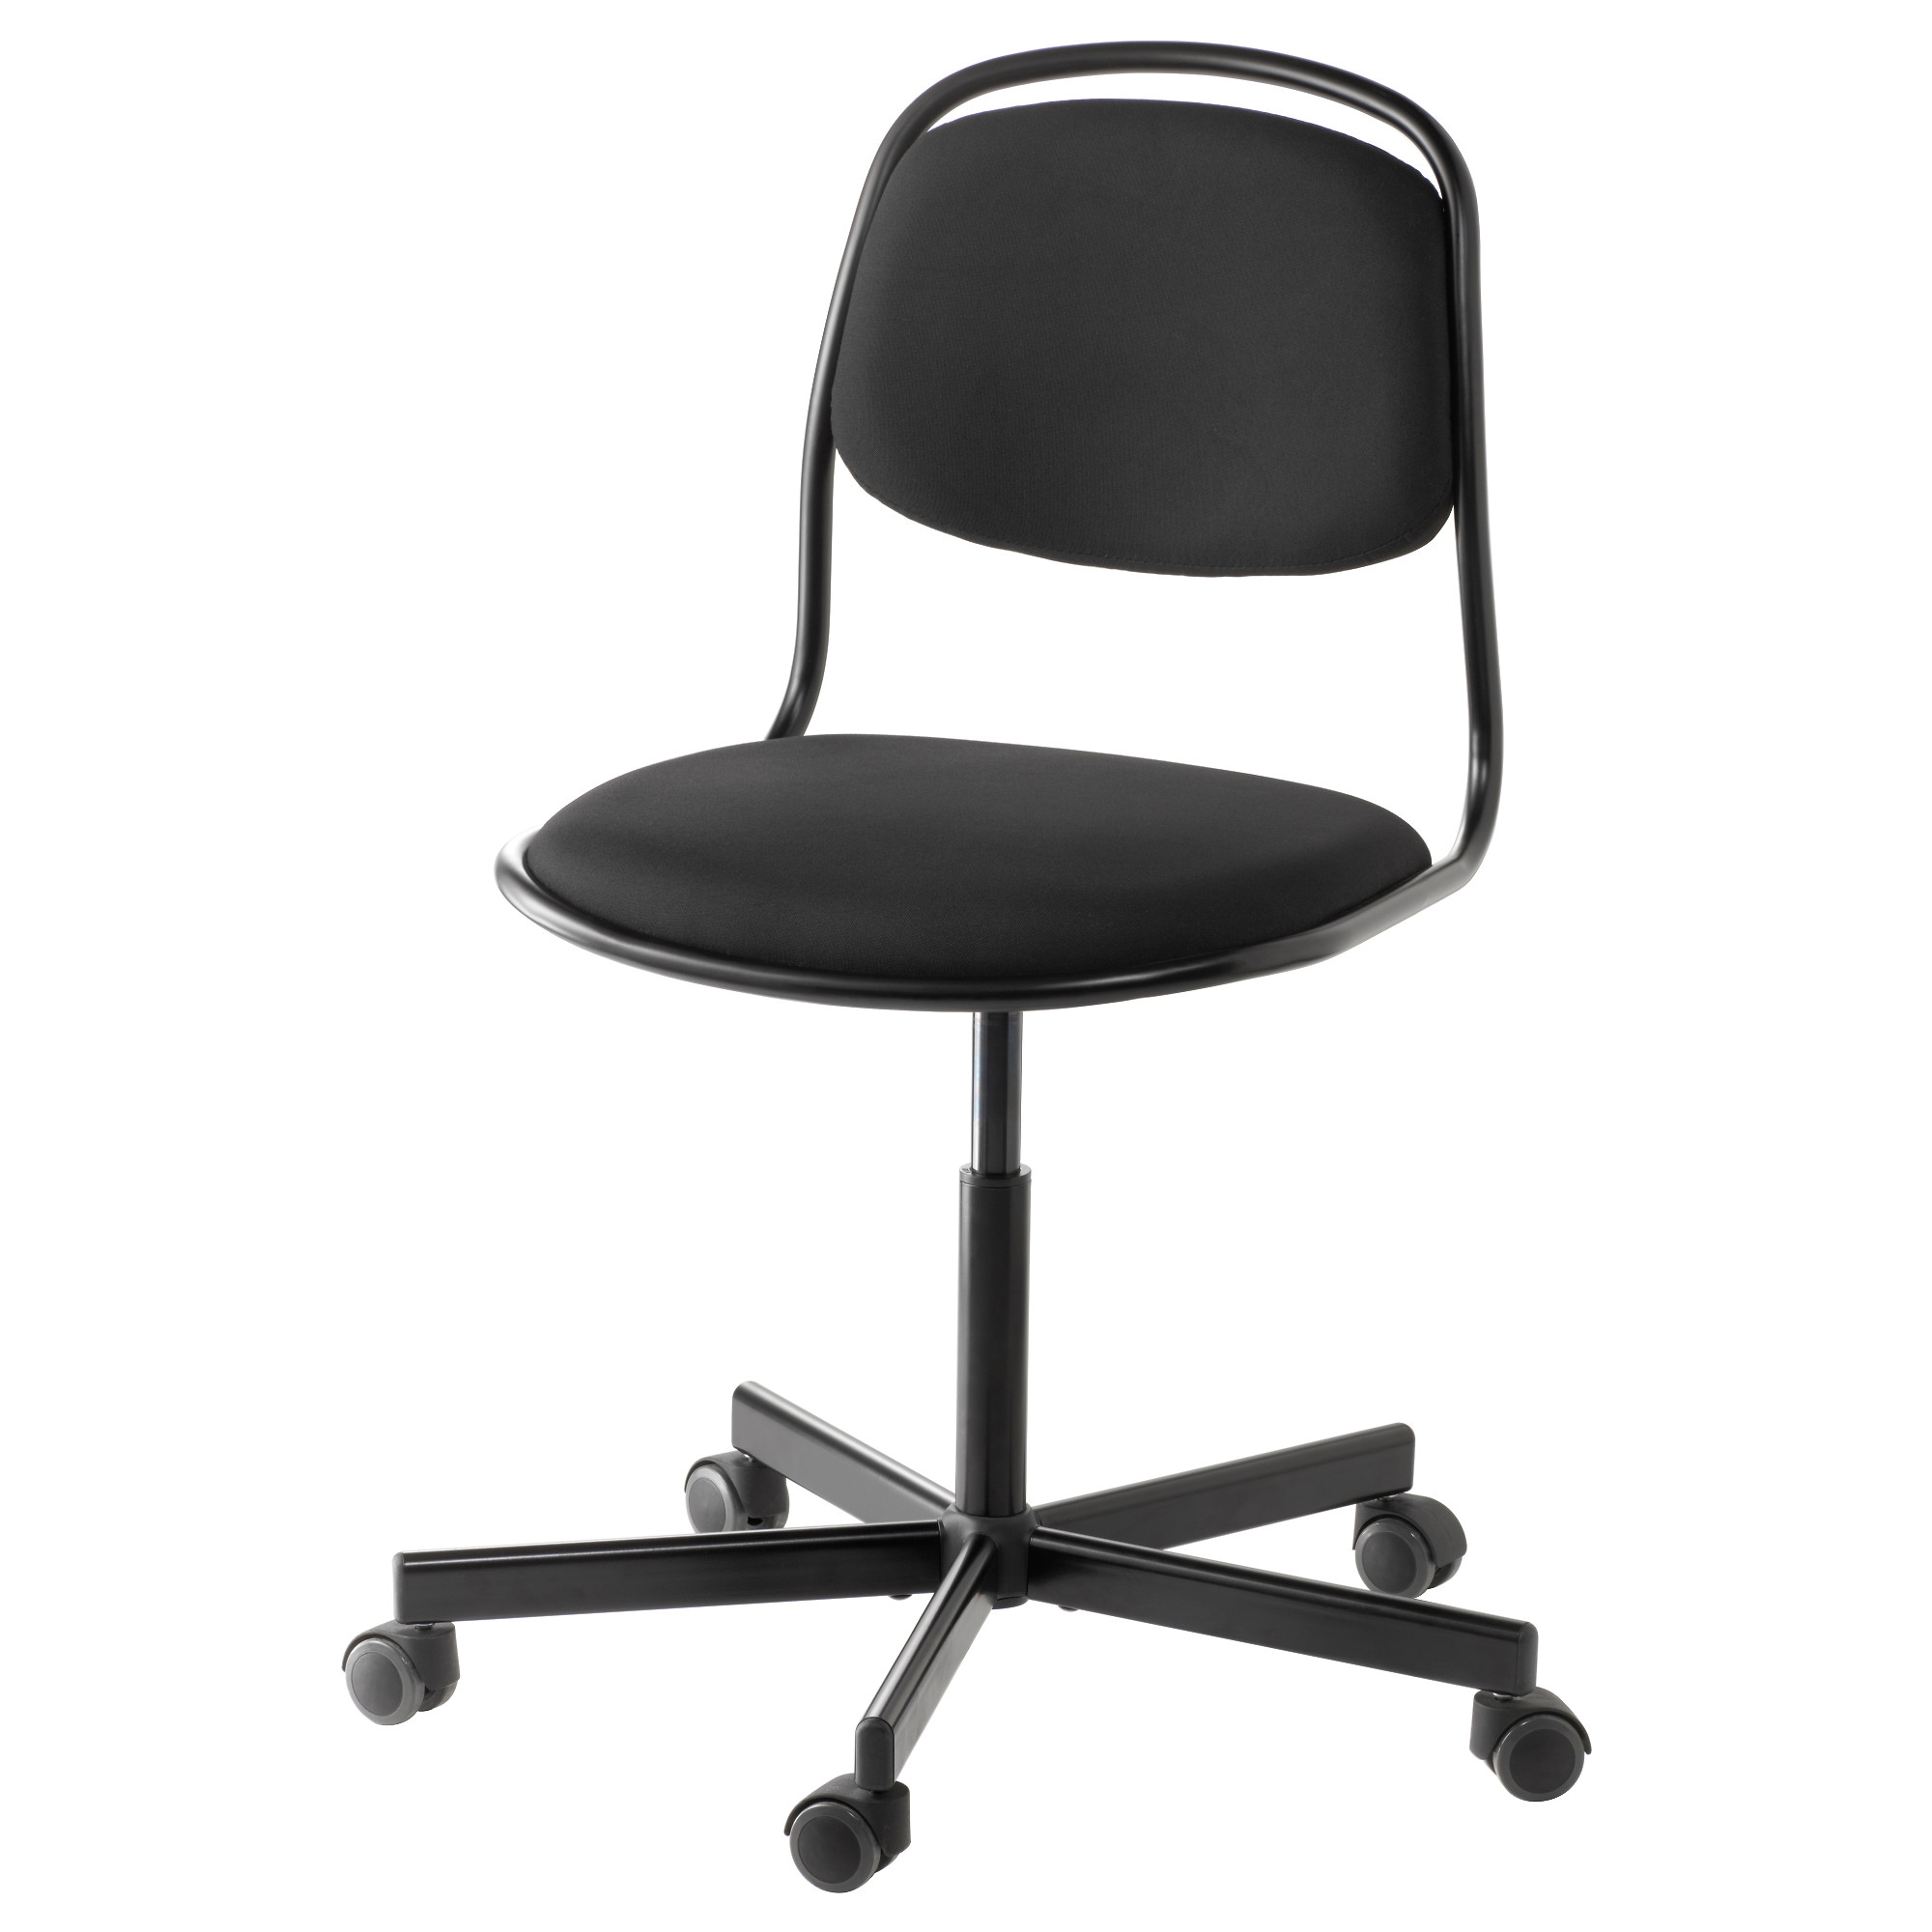 Black and white office chair -  Rfj Ll Sporren Swivel Chair Black Tested For 243 Lb Width 25 5